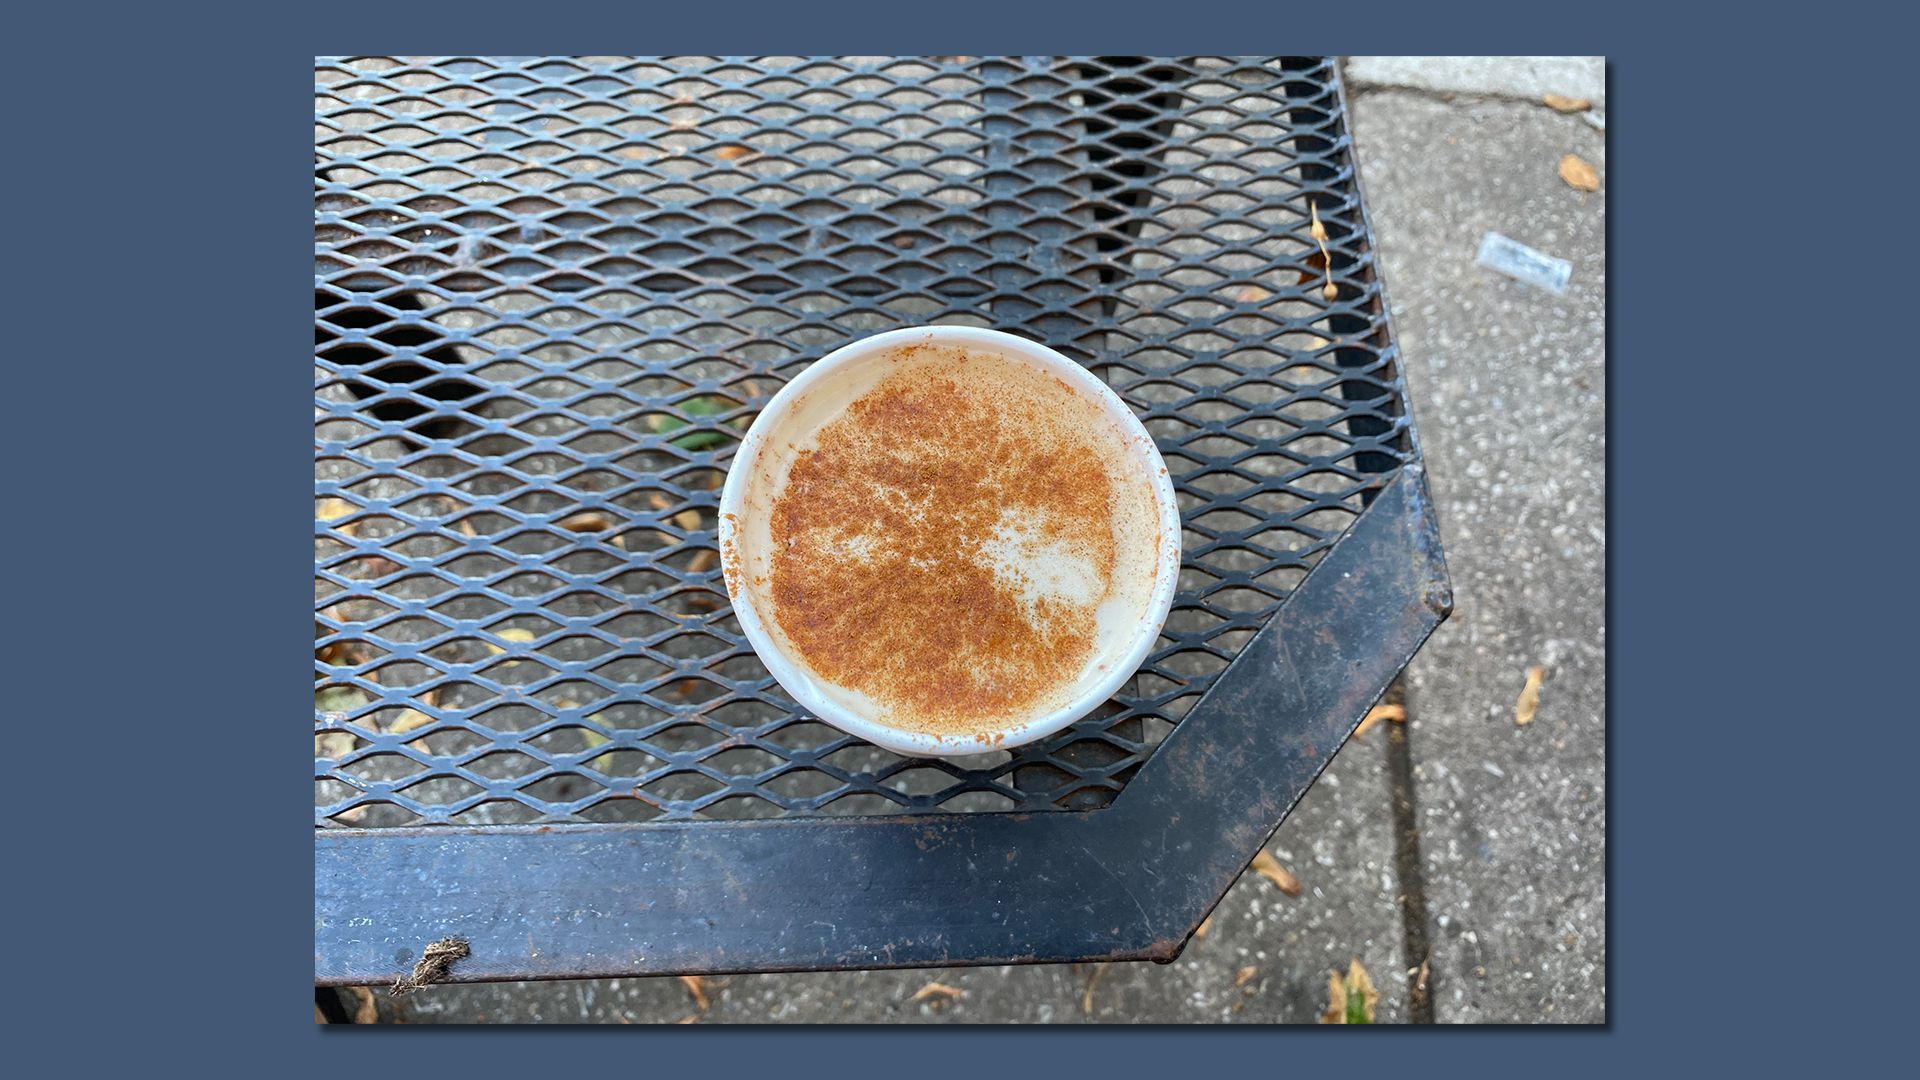 The Lucky Goat Coffee features the apple cider latte as part of their fall menu. Photo: Taylor Allen/Axios